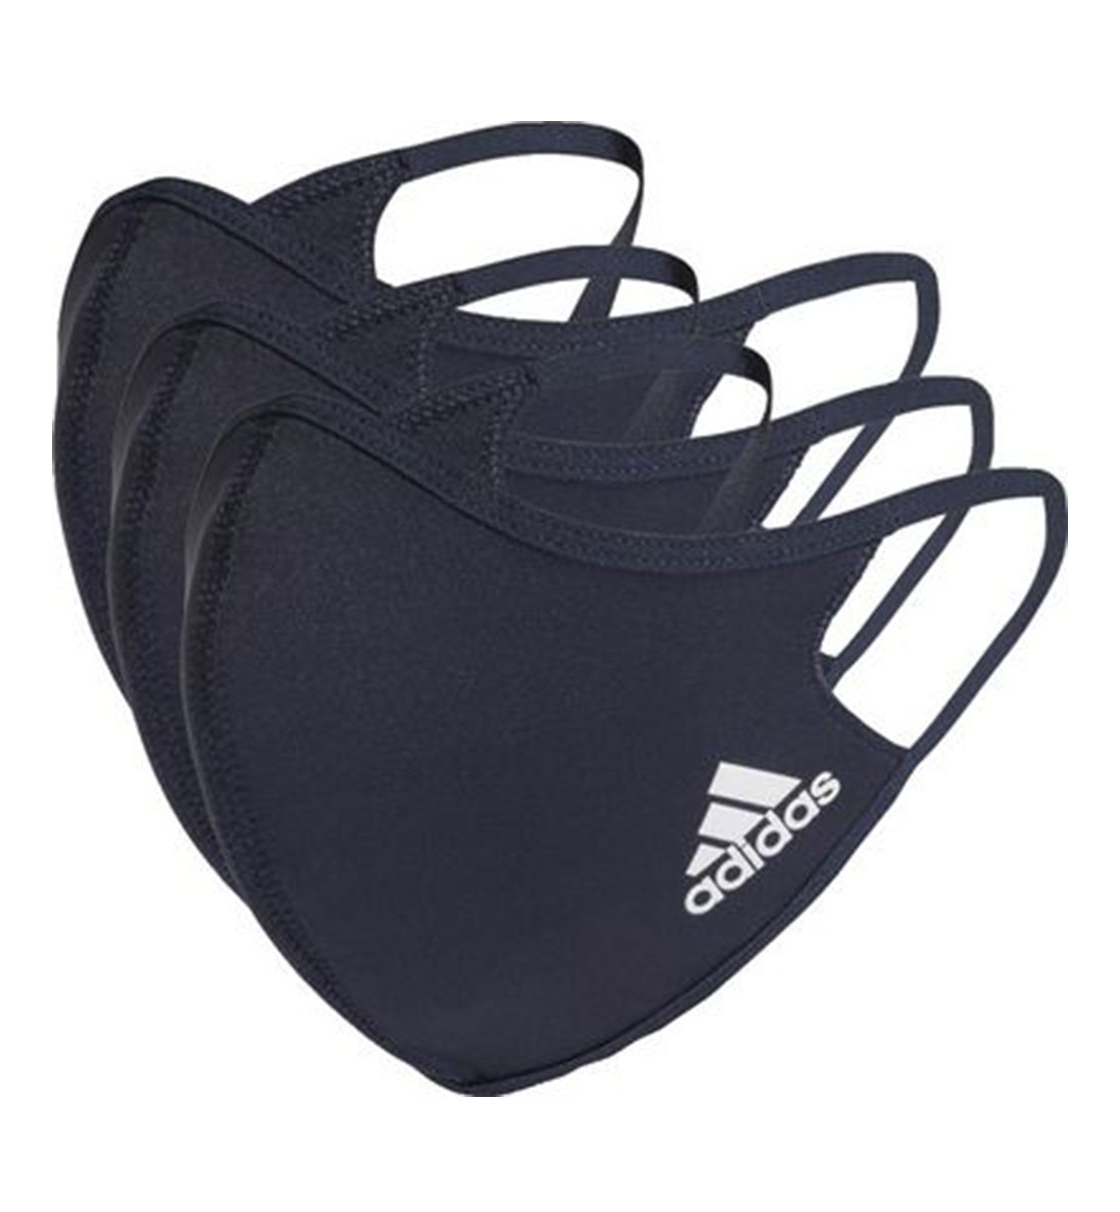 Adidas Ss21 Face Cover Bos - Not For Medical Use